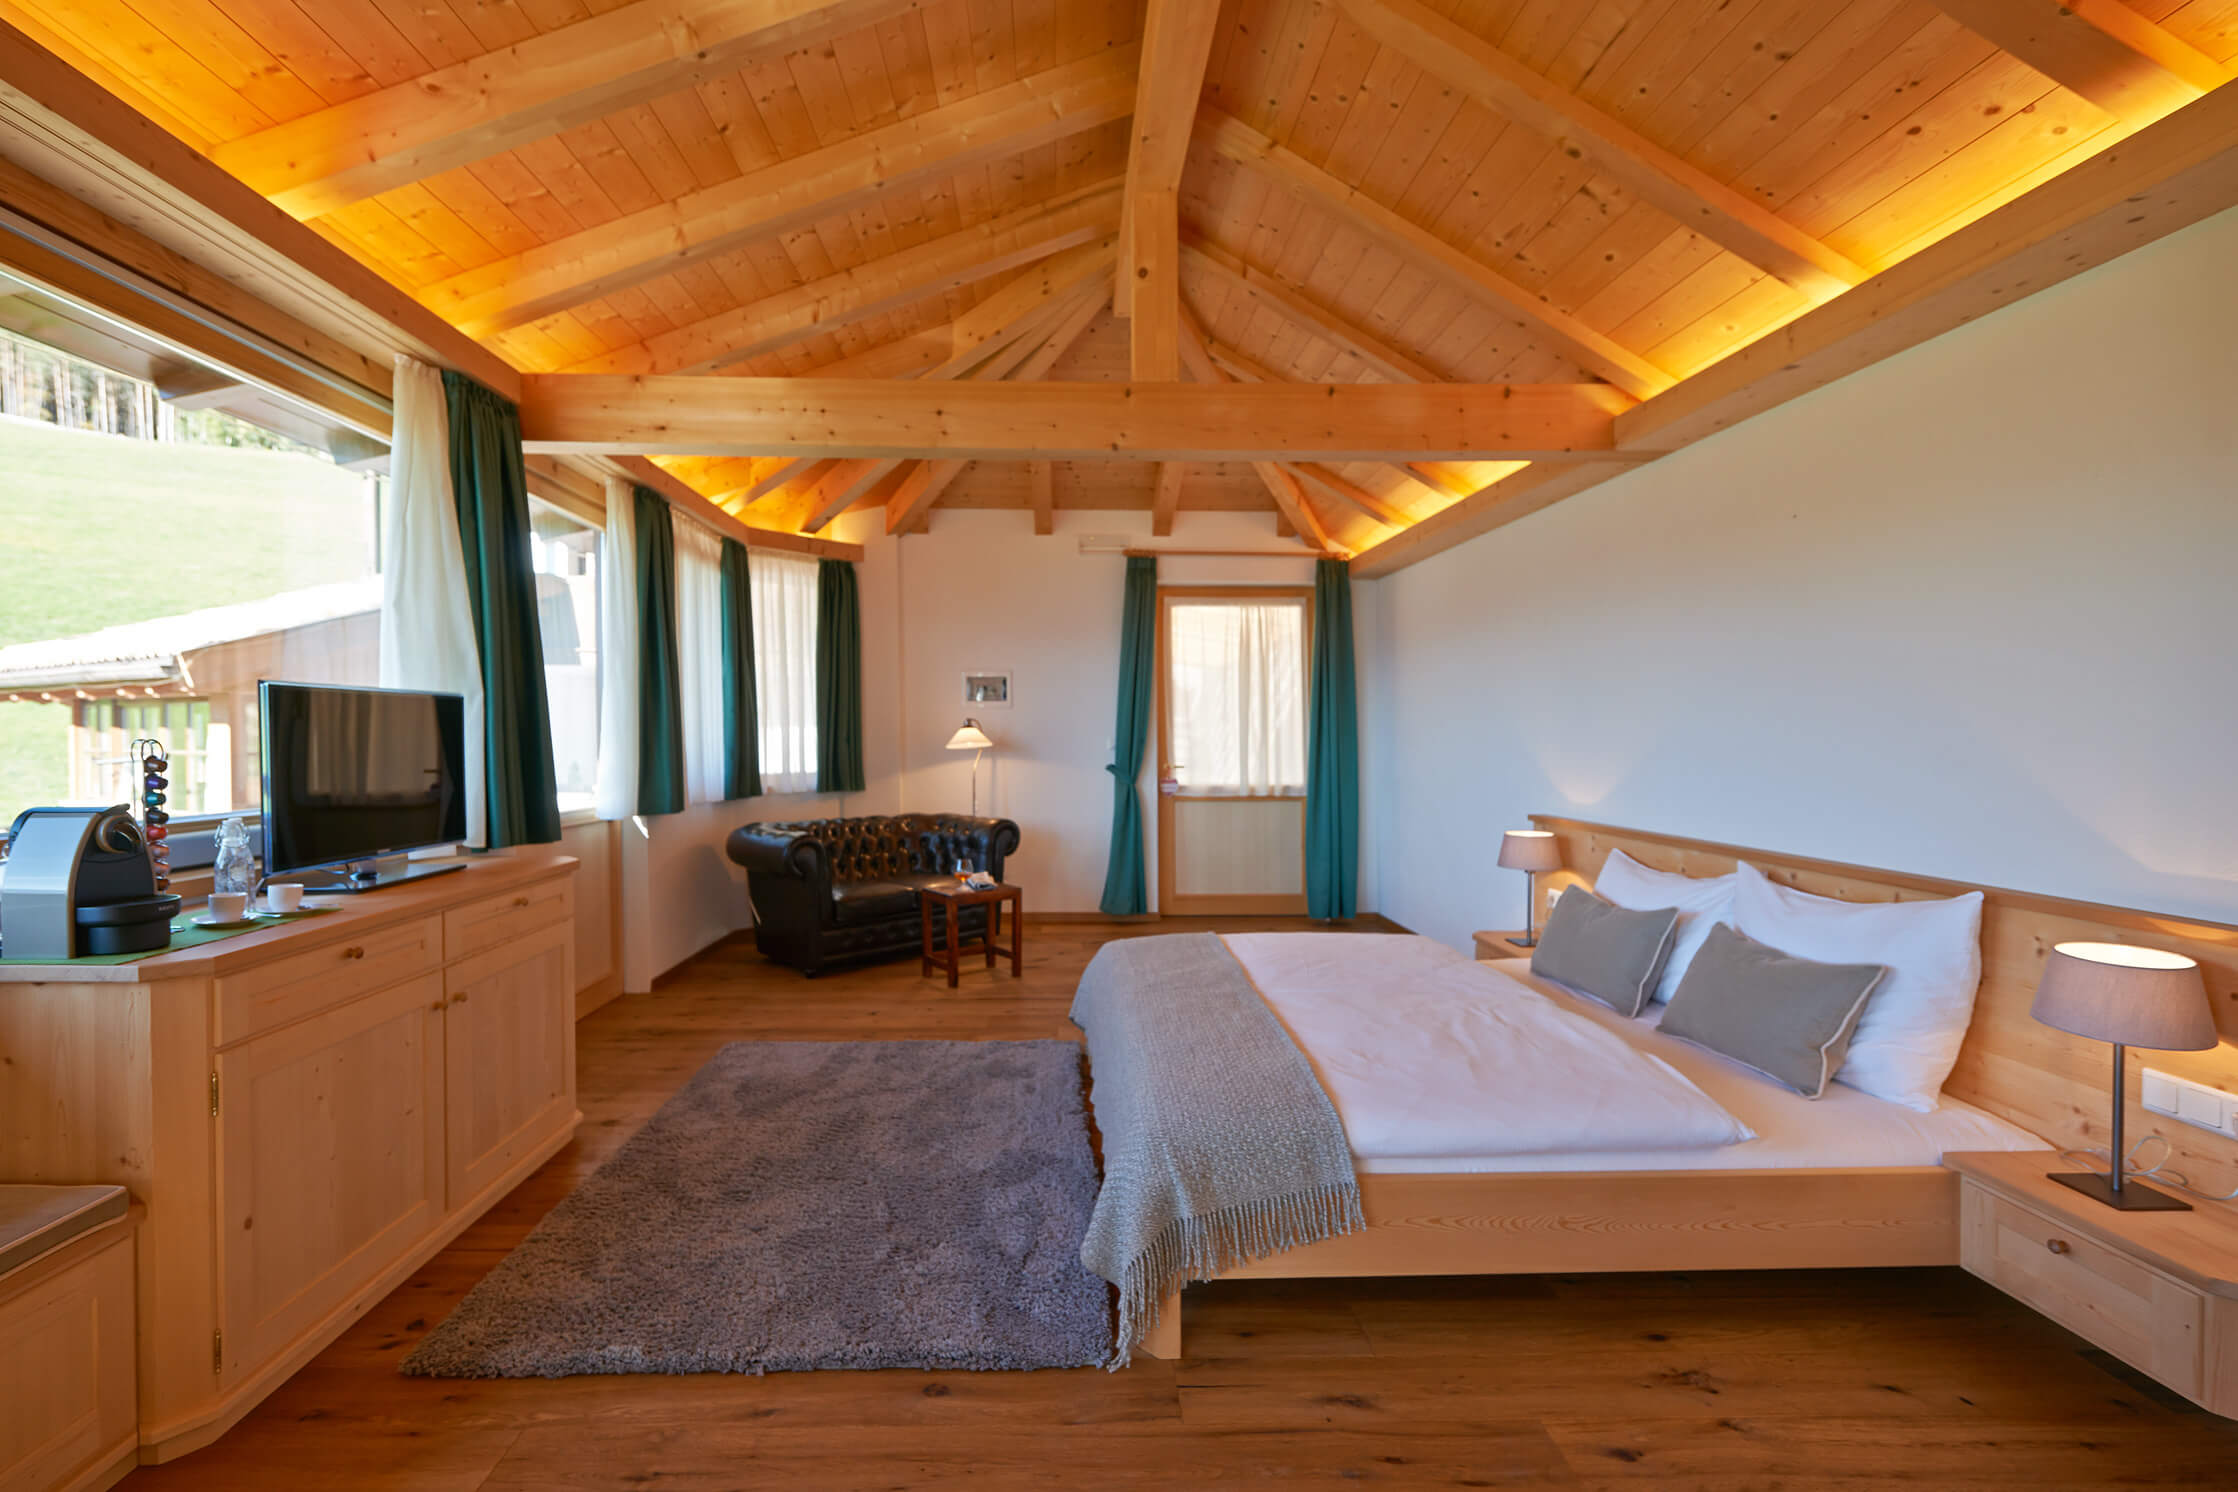 Affitto chalet in alto adige chalet grumer for In legge suite in affitto